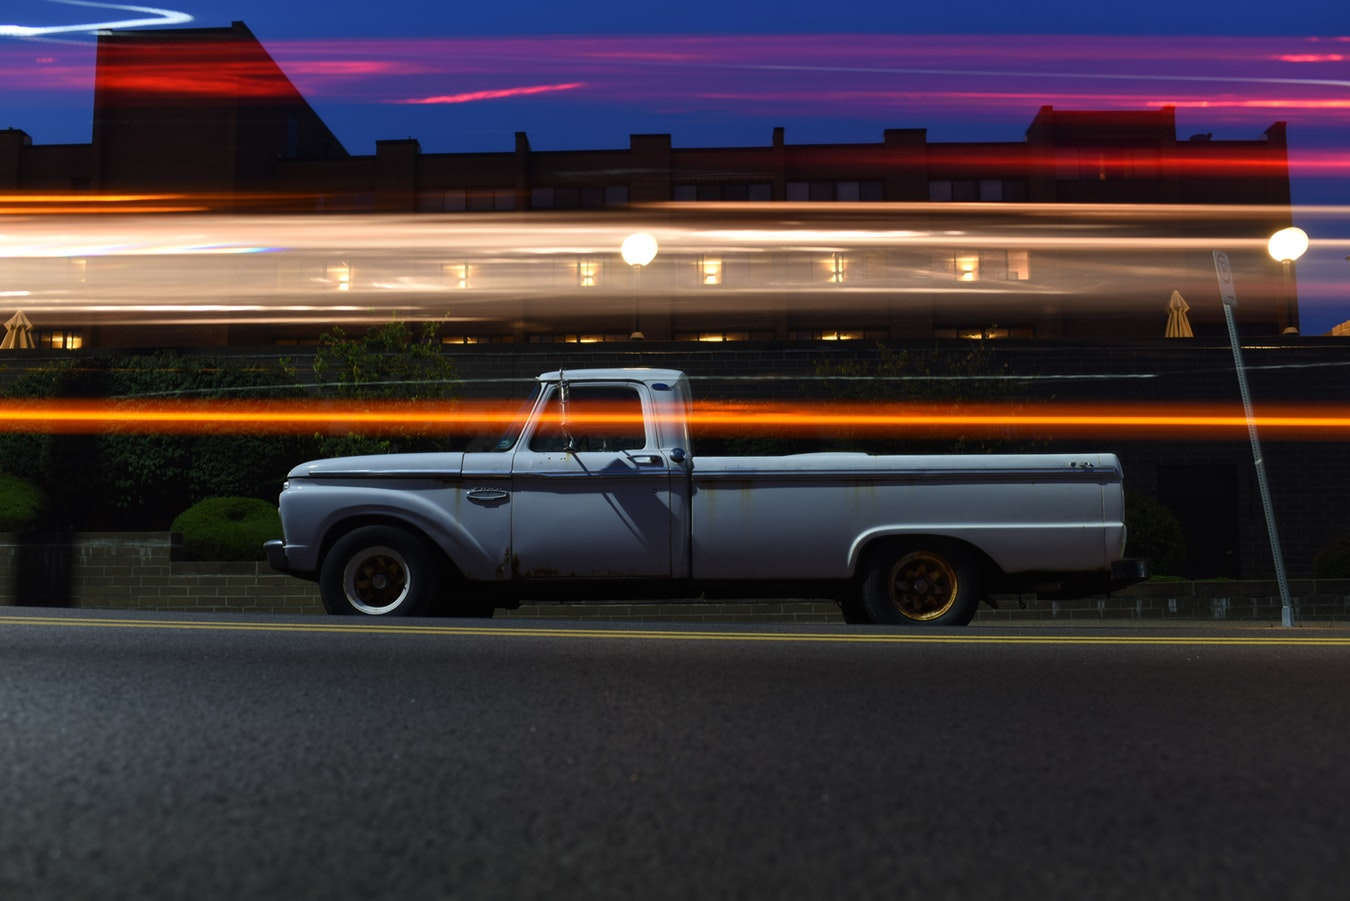 Photo of a Truck with Artistic Light Streaks